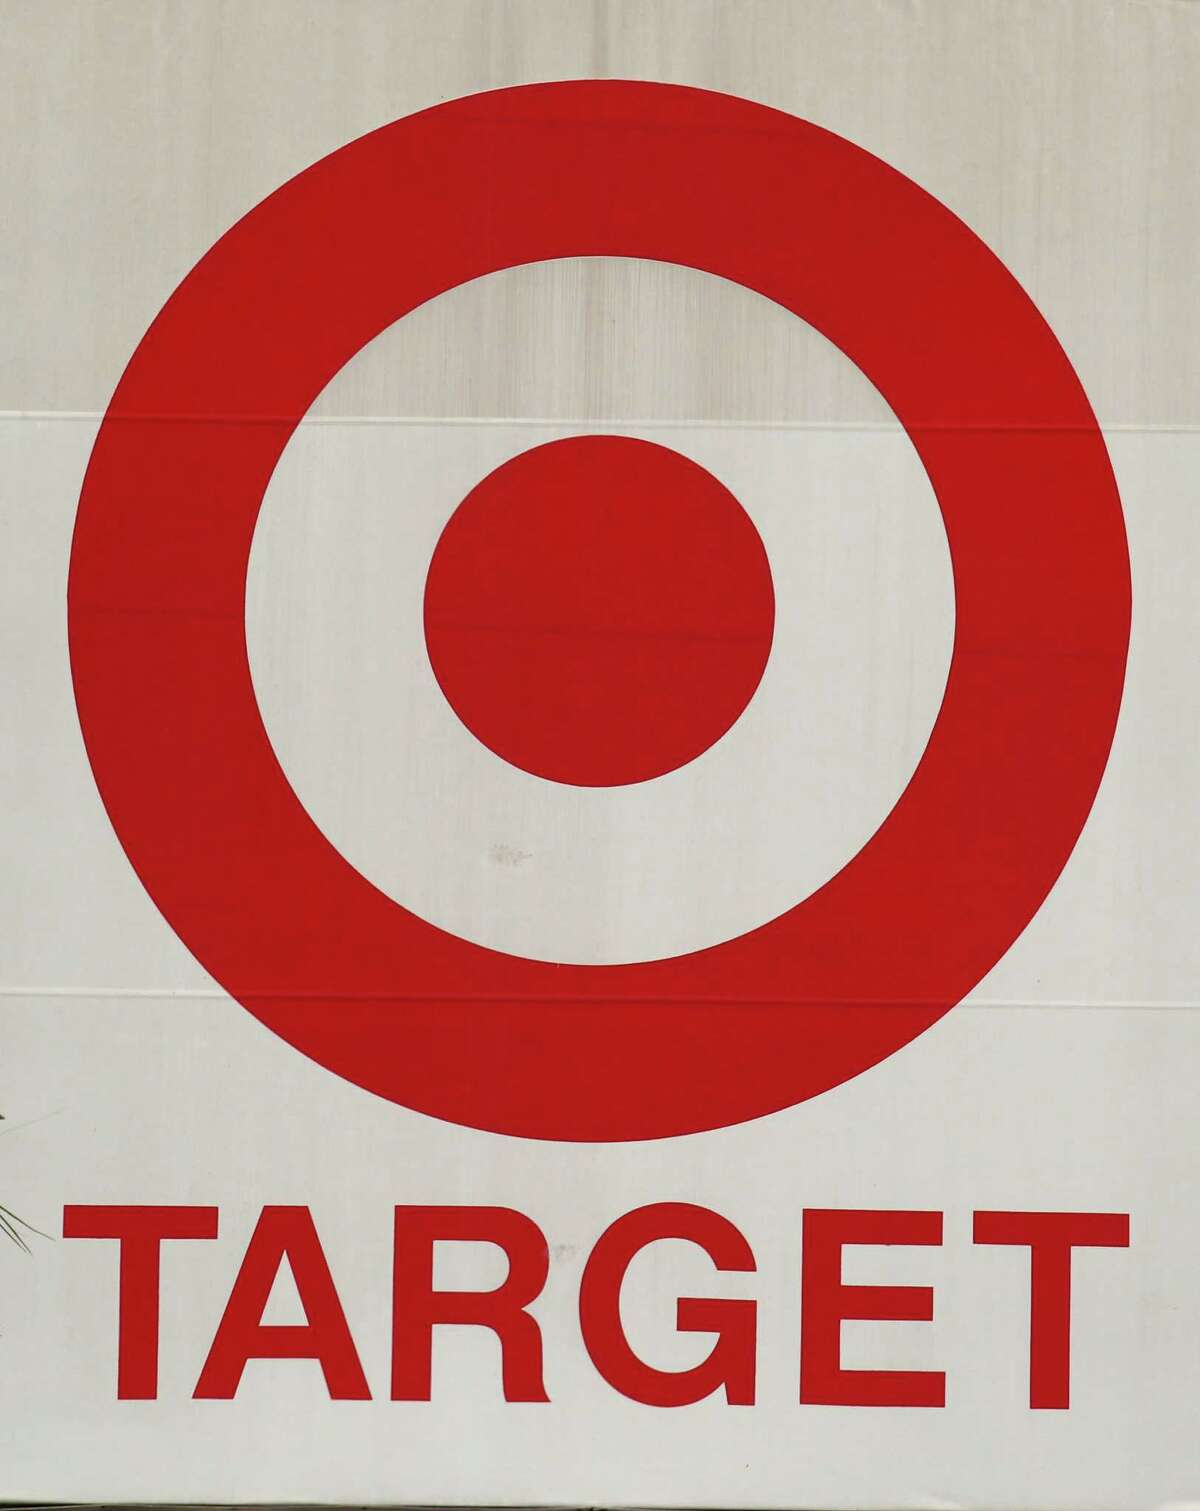 FILE - This Nov. 15, 2011, file photo, shows a Target store sign in Miami. Target Corp. said Thursday, May 3, 2012, a key sales figure rose 1.1 percent in April, but it fell short of analysts' expectations. (AP Photo/Wilfredo Lee, File)